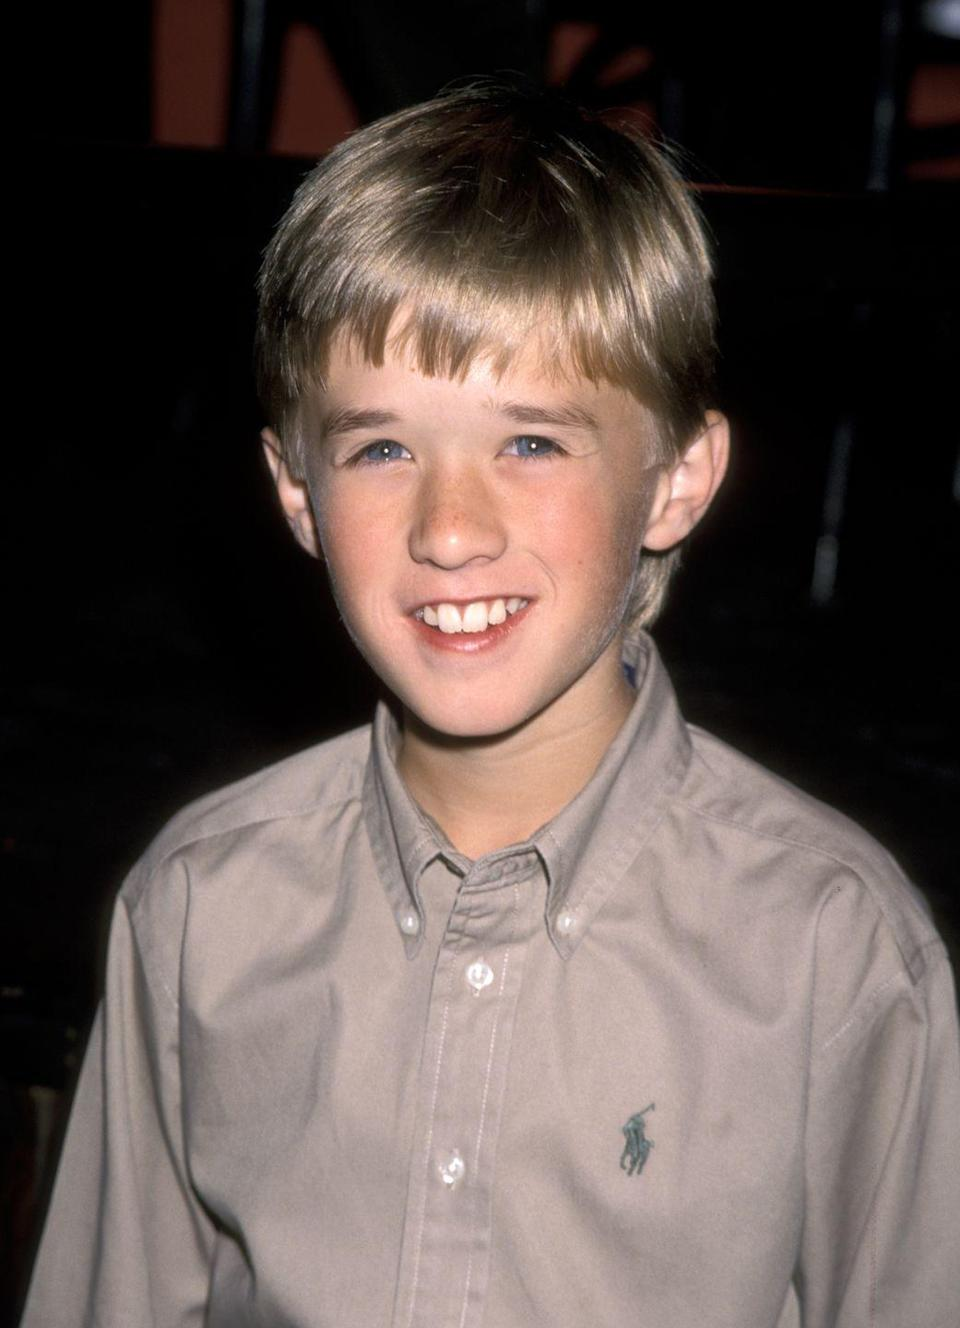 """<p>Haley got his first role in a commercial at the age of 4, following up with guest appearances on many '90s TV shows and minor roles in blockbusters such as <em><a href=""""https://www.amazon.com/dp/B002QVZ71I?tag=syn-yahoo-20&ascsubtag=%5Bartid%7C10050.g.24736857%5Bsrc%7Cyahoo-us"""" rel=""""nofollow noopener"""" target=""""_blank"""" data-ylk=""""slk:Forrest Gump"""" class=""""link rapid-noclick-resp"""">Forrest Gump</a></em>. His breakout role was starring as the troubled child in <em><a href=""""https://www.amazon.com/dp/B004NAB9EE?tag=syn-yahoo-20&ascsubtag=%5Bartid%7C10050.g.24736857%5Bsrc%7Cyahoo-us"""" rel=""""nofollow noopener"""" target=""""_blank"""" data-ylk=""""slk:The Sixth Sense"""" class=""""link rapid-noclick-resp"""">The Sixth Sense</a></em>. He's continued to act, and, as far as we know, he really doesn't see dead people. </p>"""